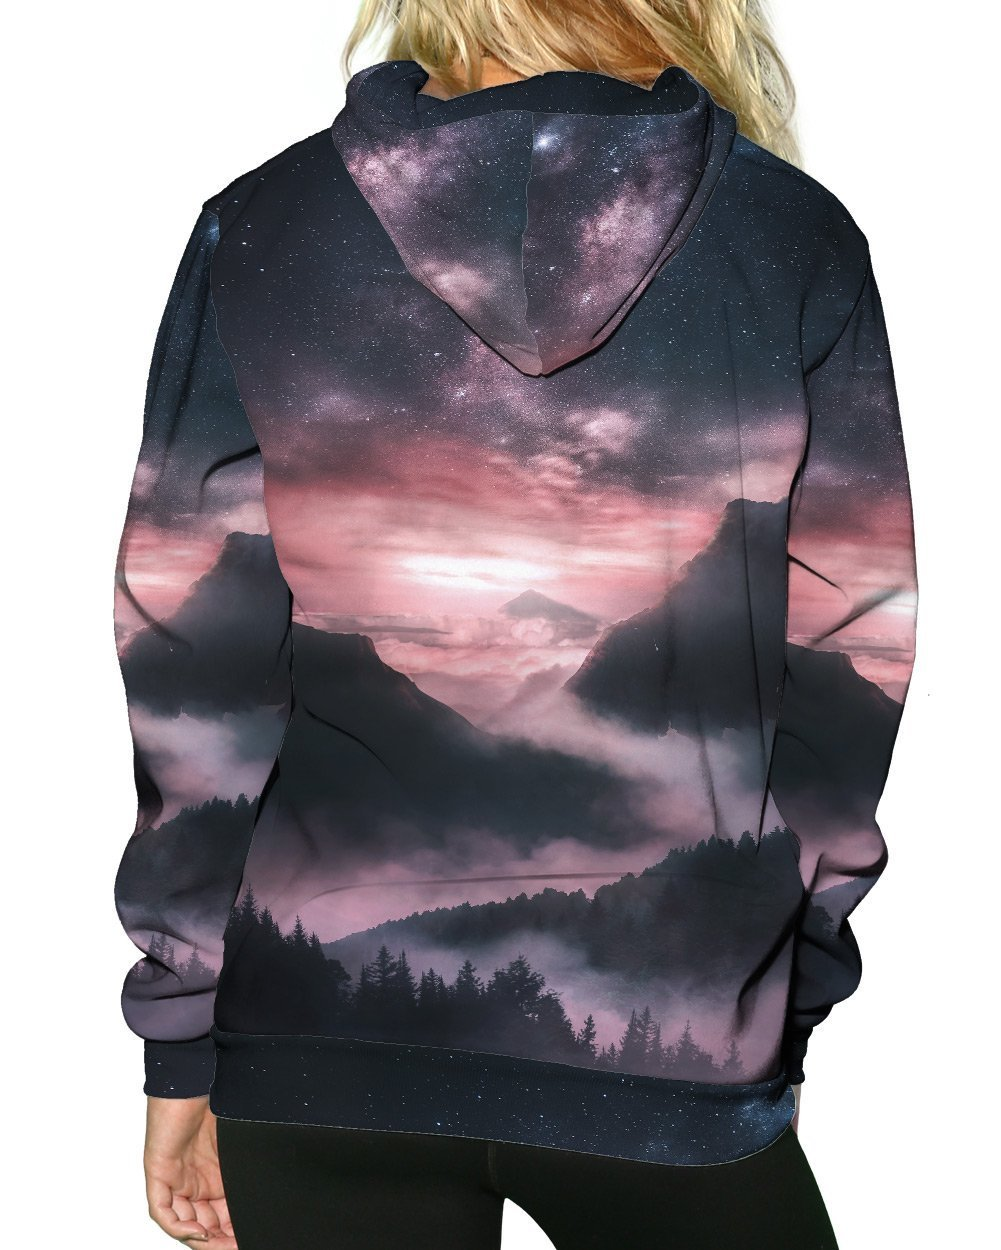 At Dusk Pullover Hoodie-Female-Back